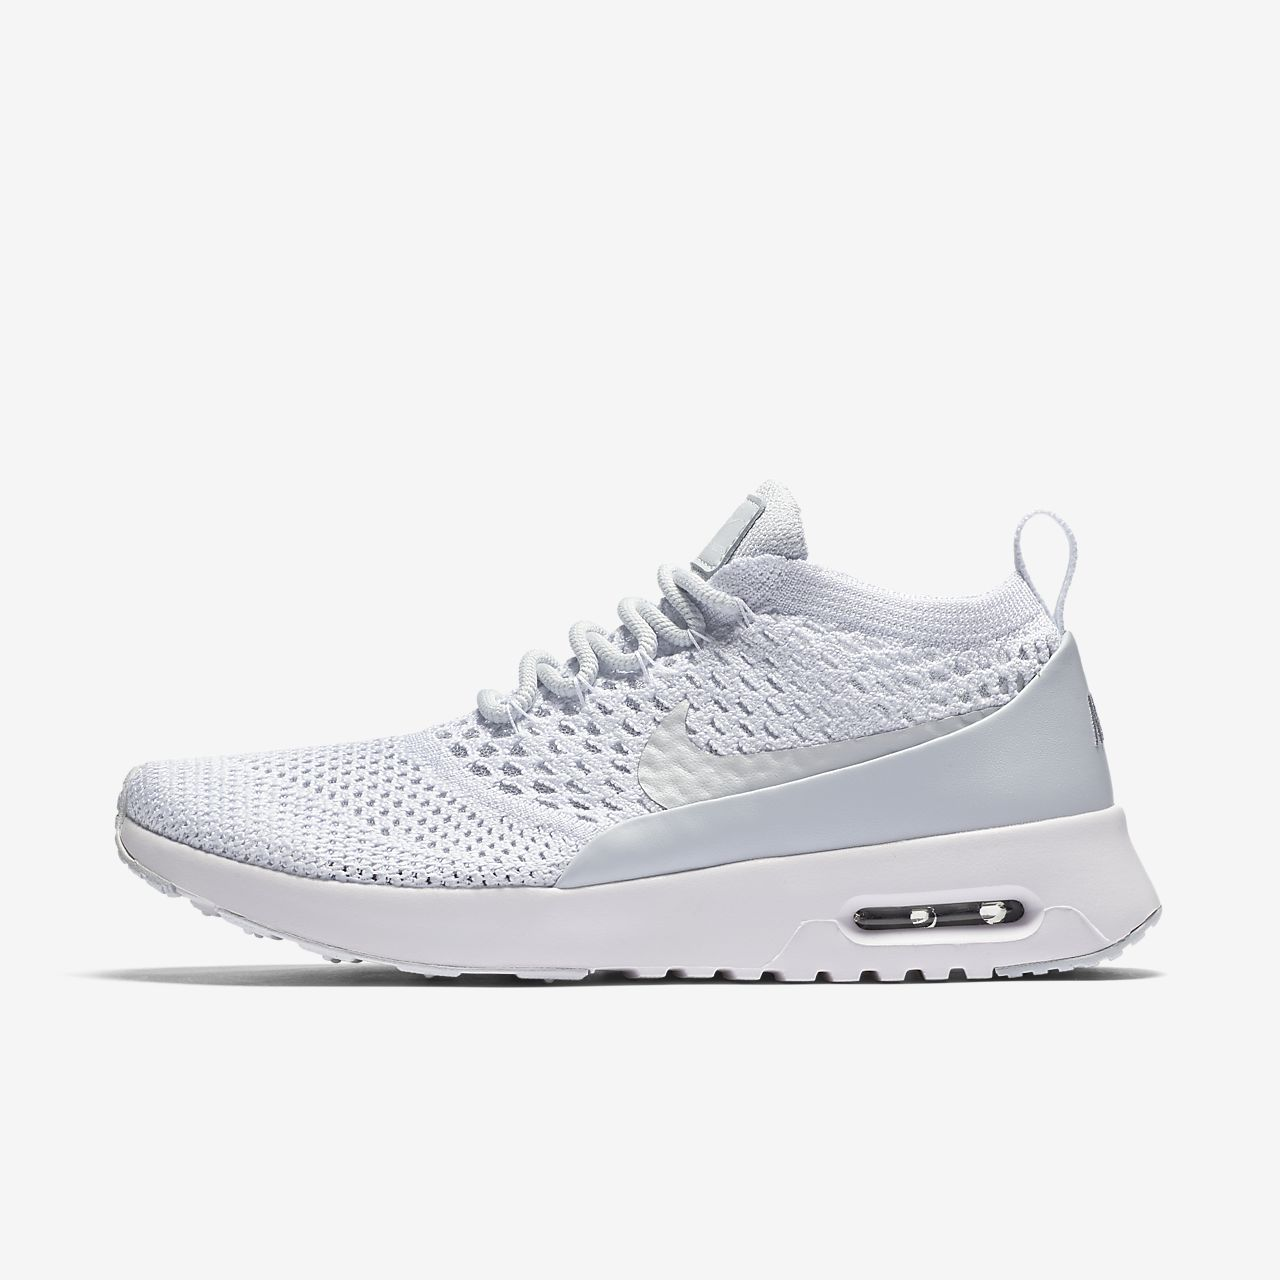 ... Nike Air Max Thea Ultra Flyknit Women's Shoe